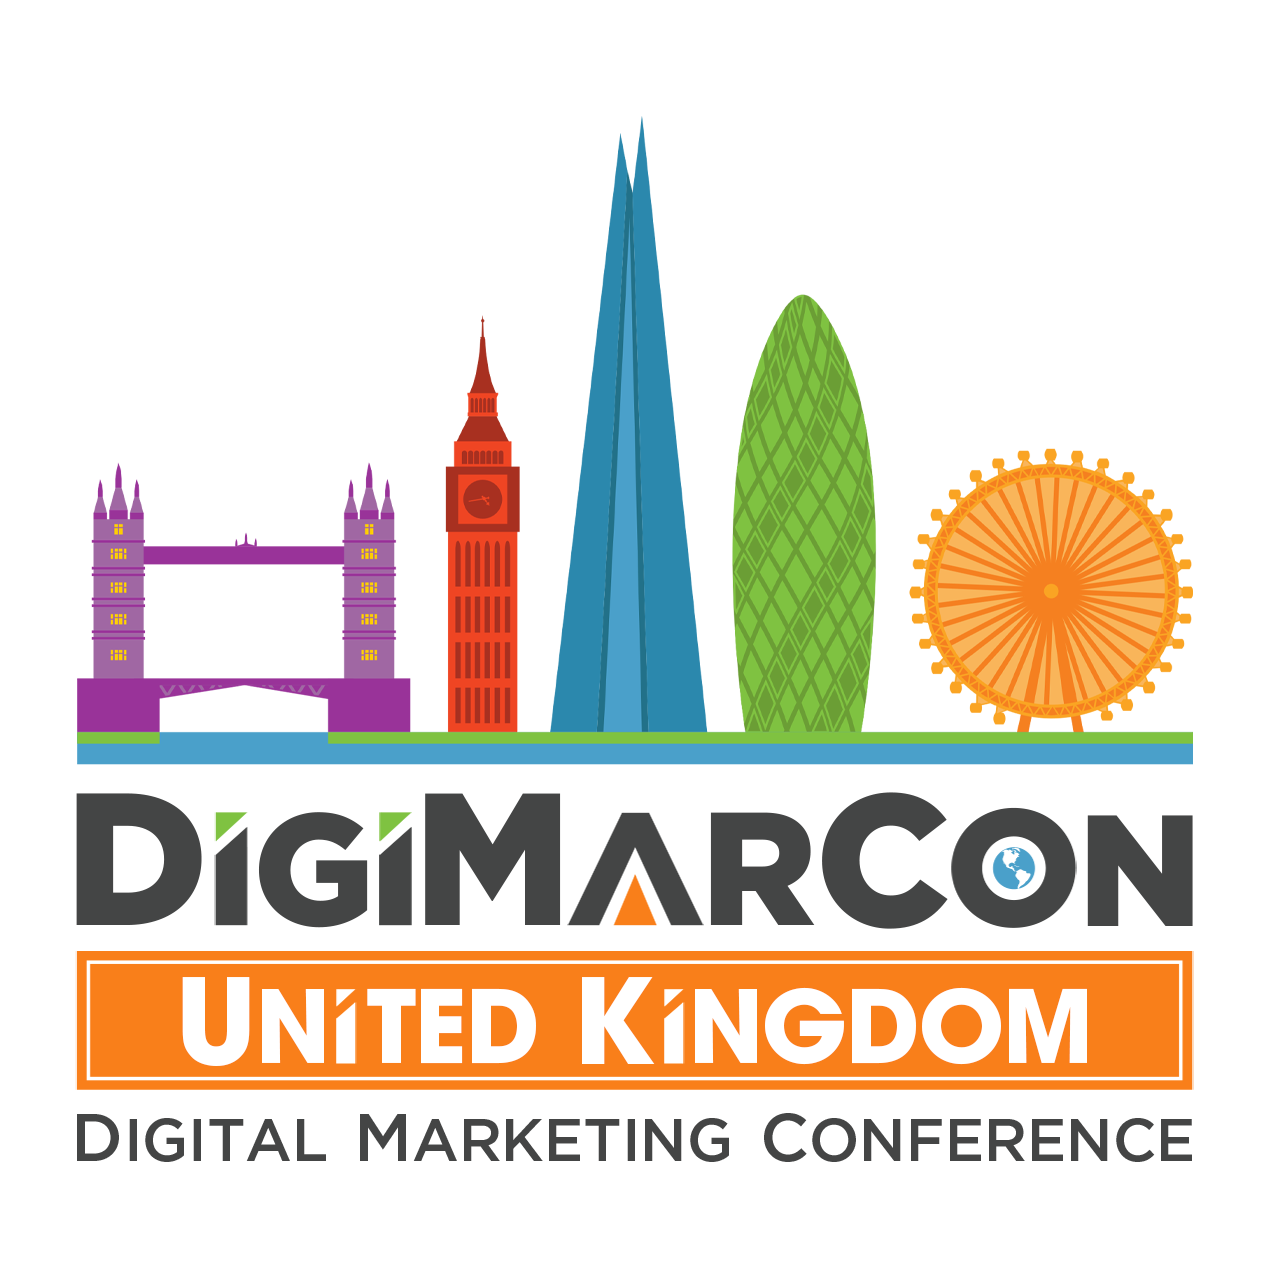 DigiMarCon UK 2022 – Digital Marketing, Media and Advertising Conference & Exhibition